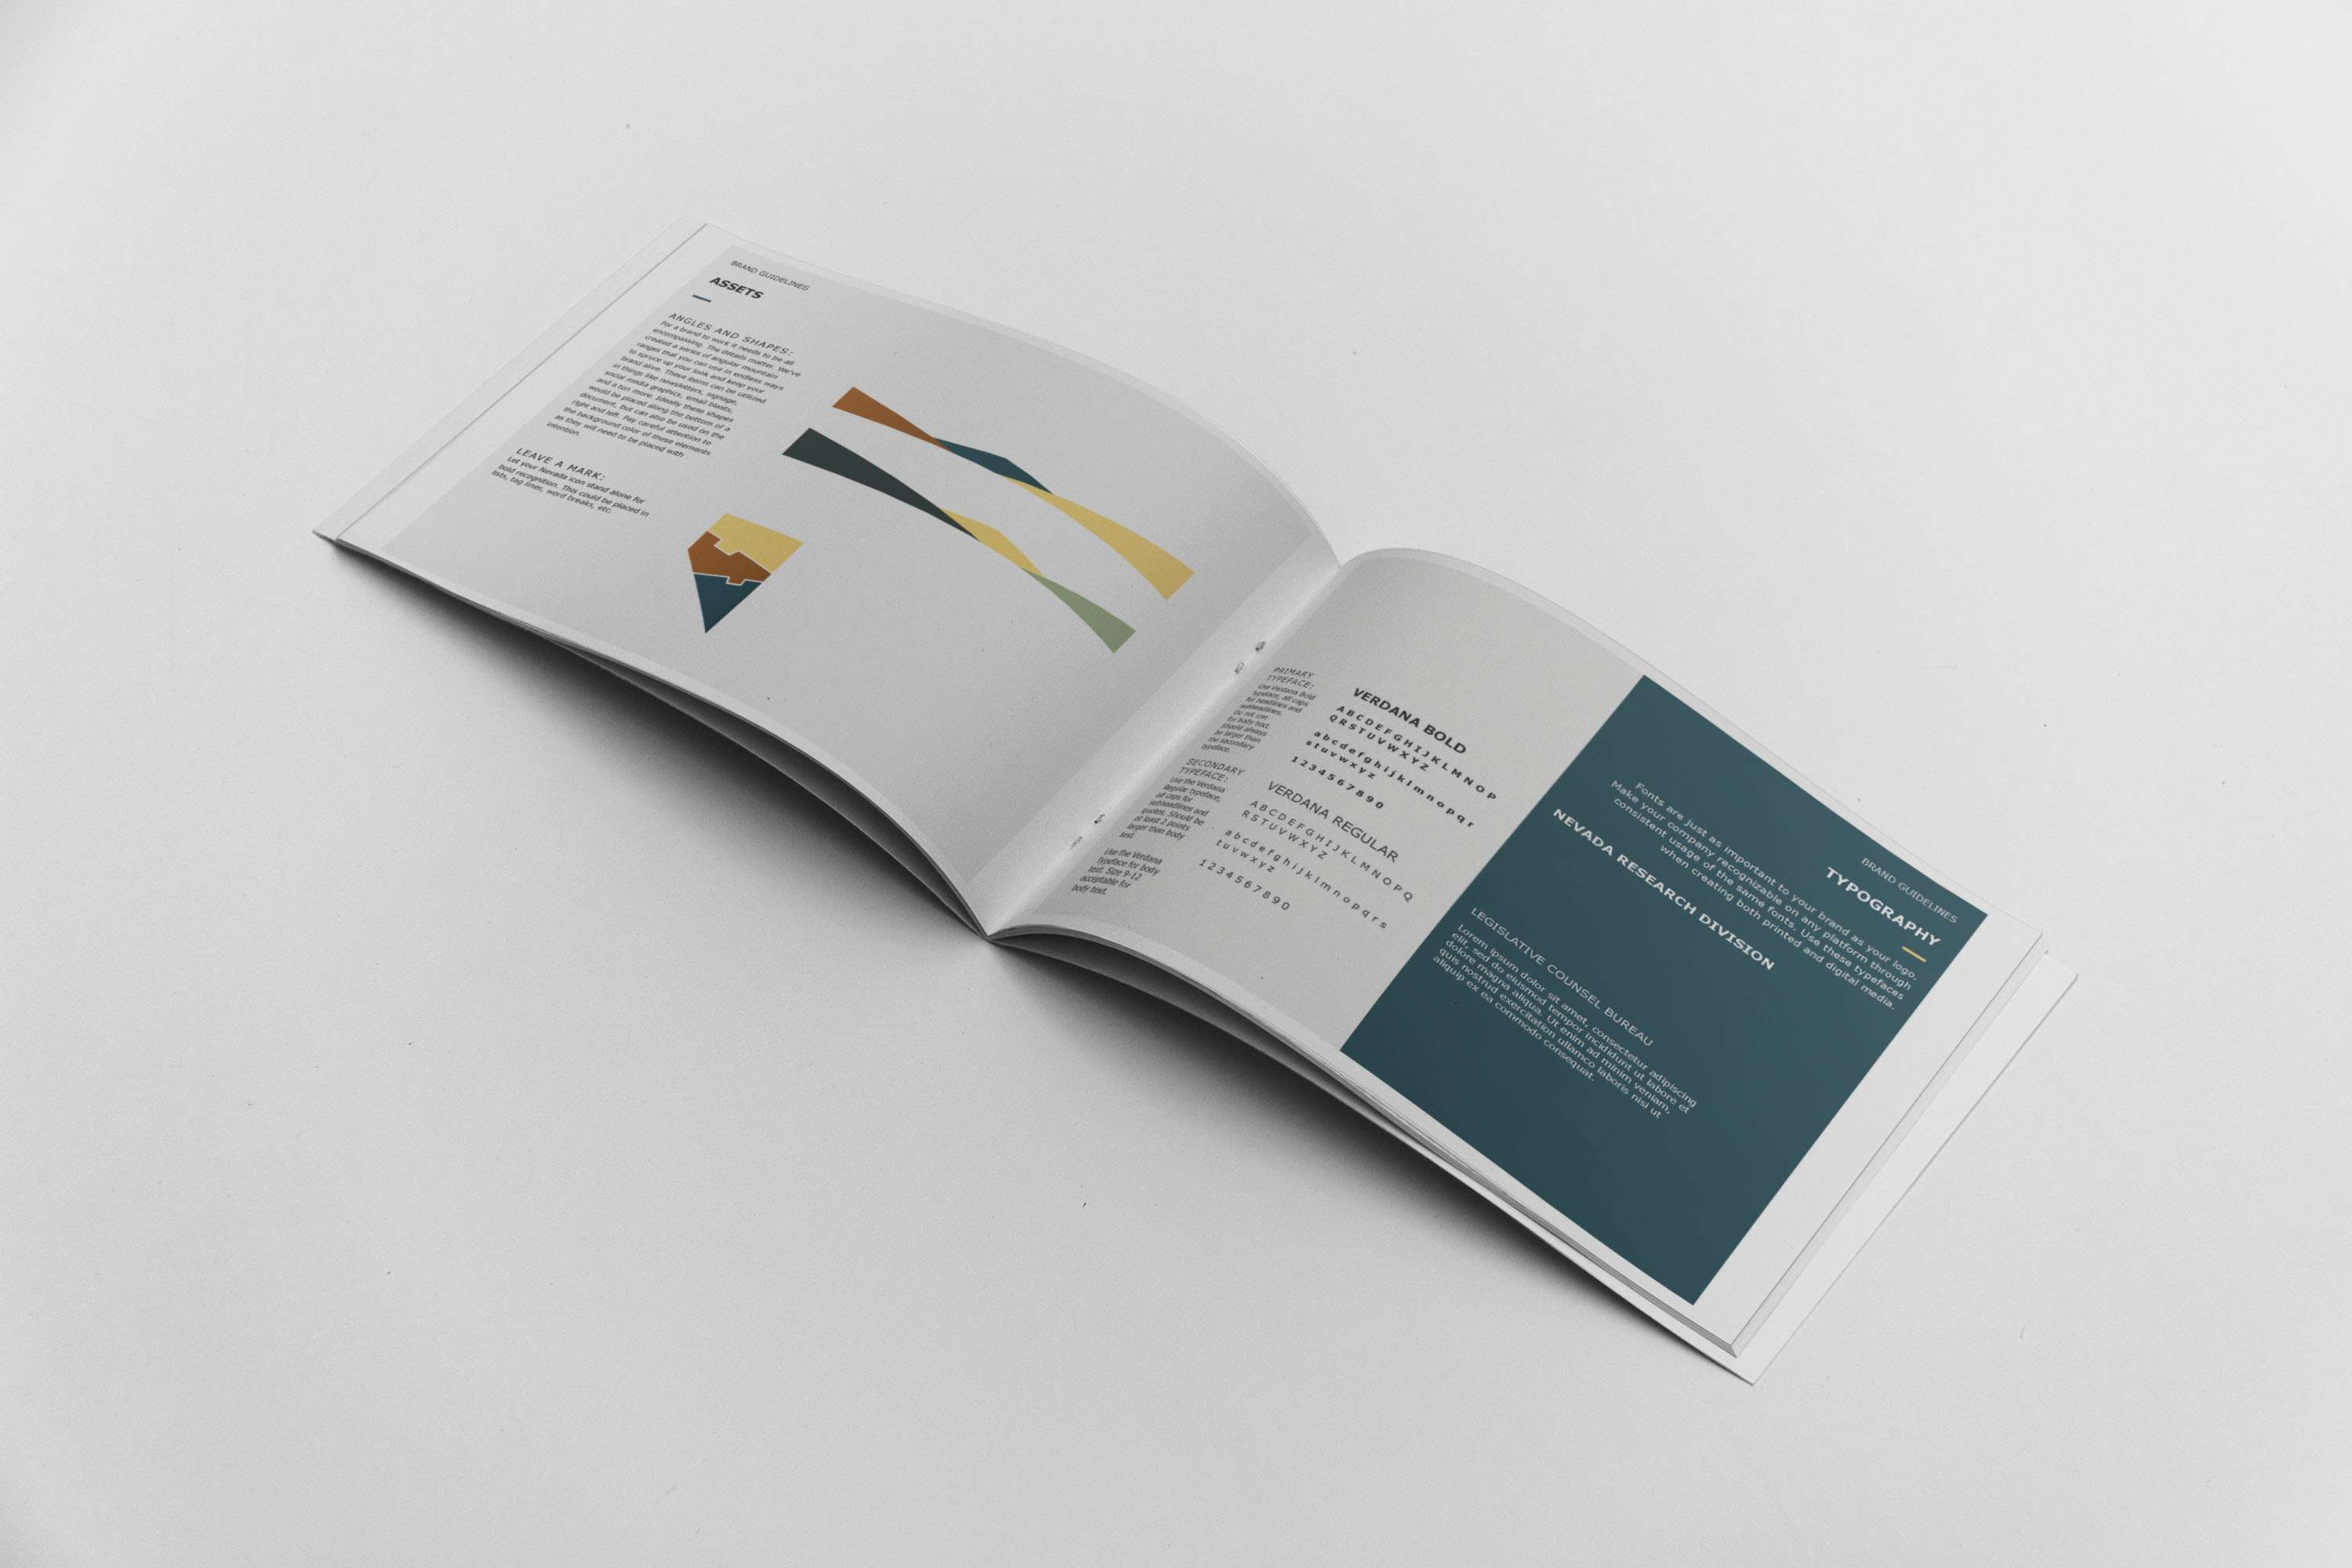 Mabble Media - Creative Agency | Nevada Research Division Brand Guide